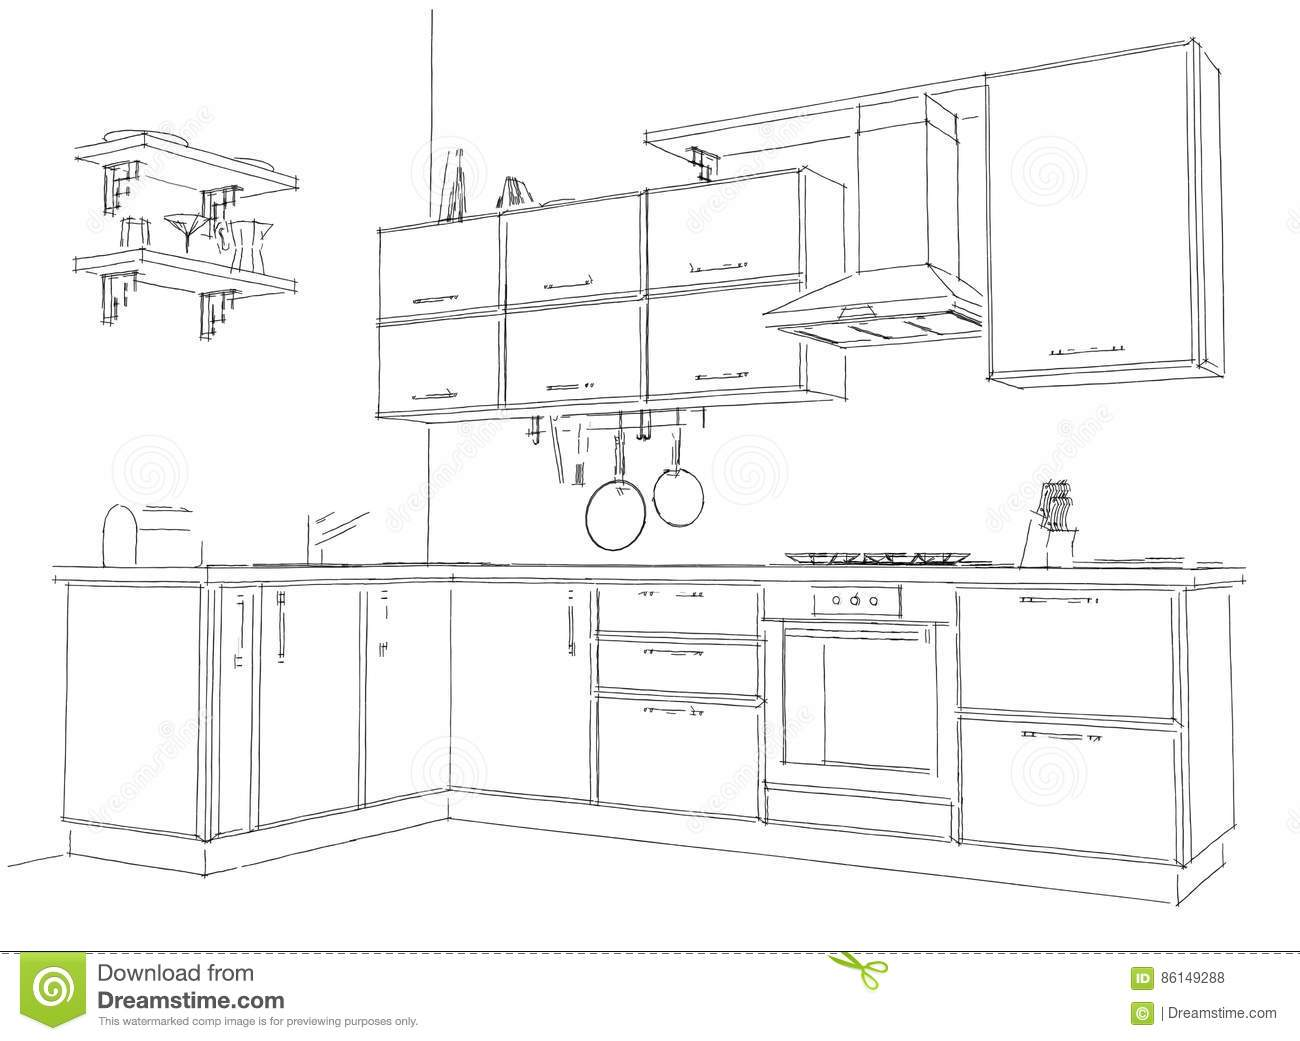 Cucina 3d Dwg. Amazing Overview The Fat Is A Furniture Series ...